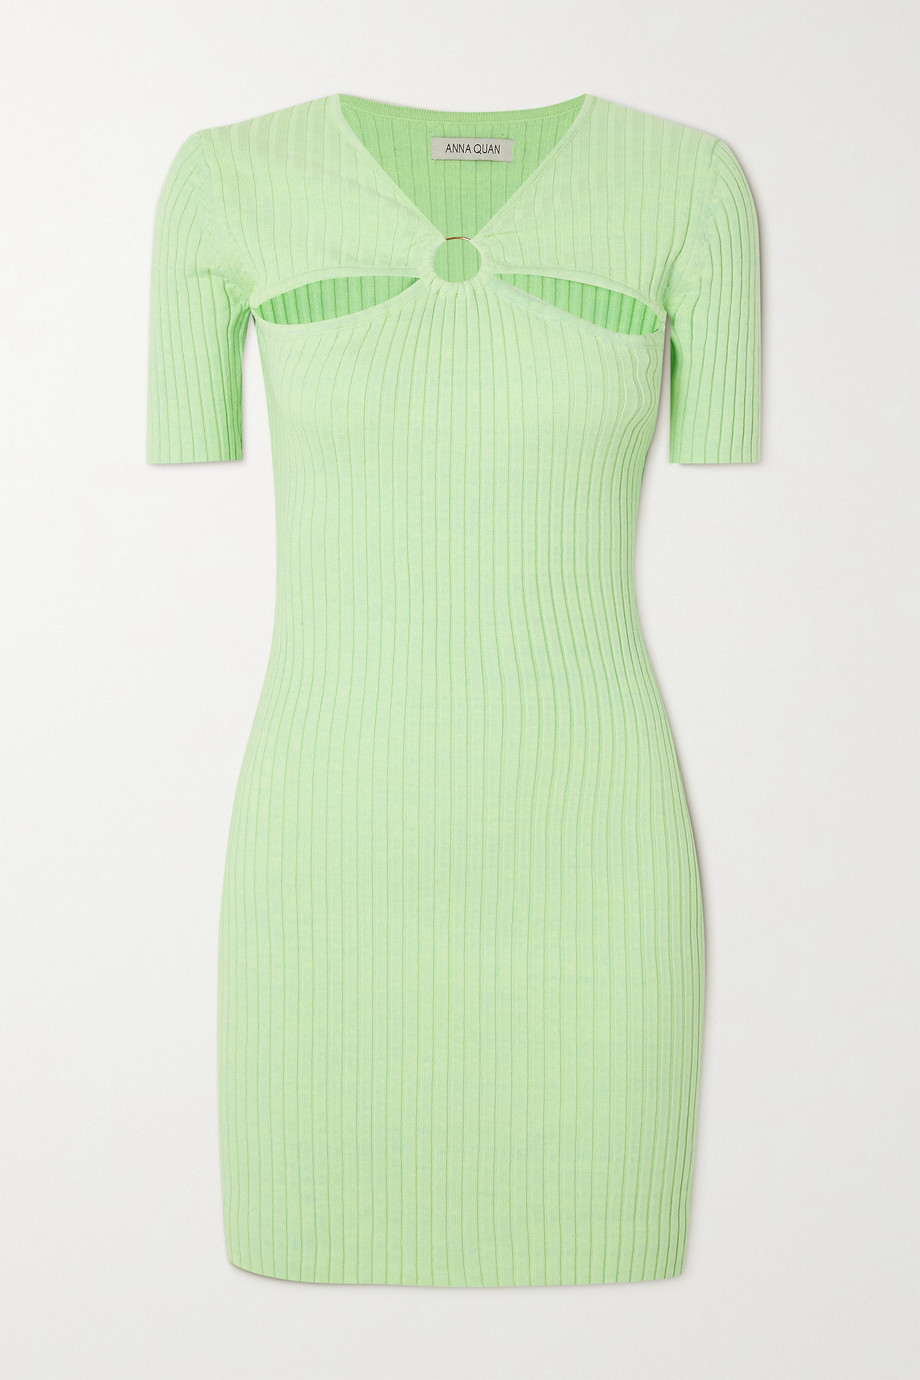 ANNA QUAN Sierra cutout embellished ribbed cotton mini dress